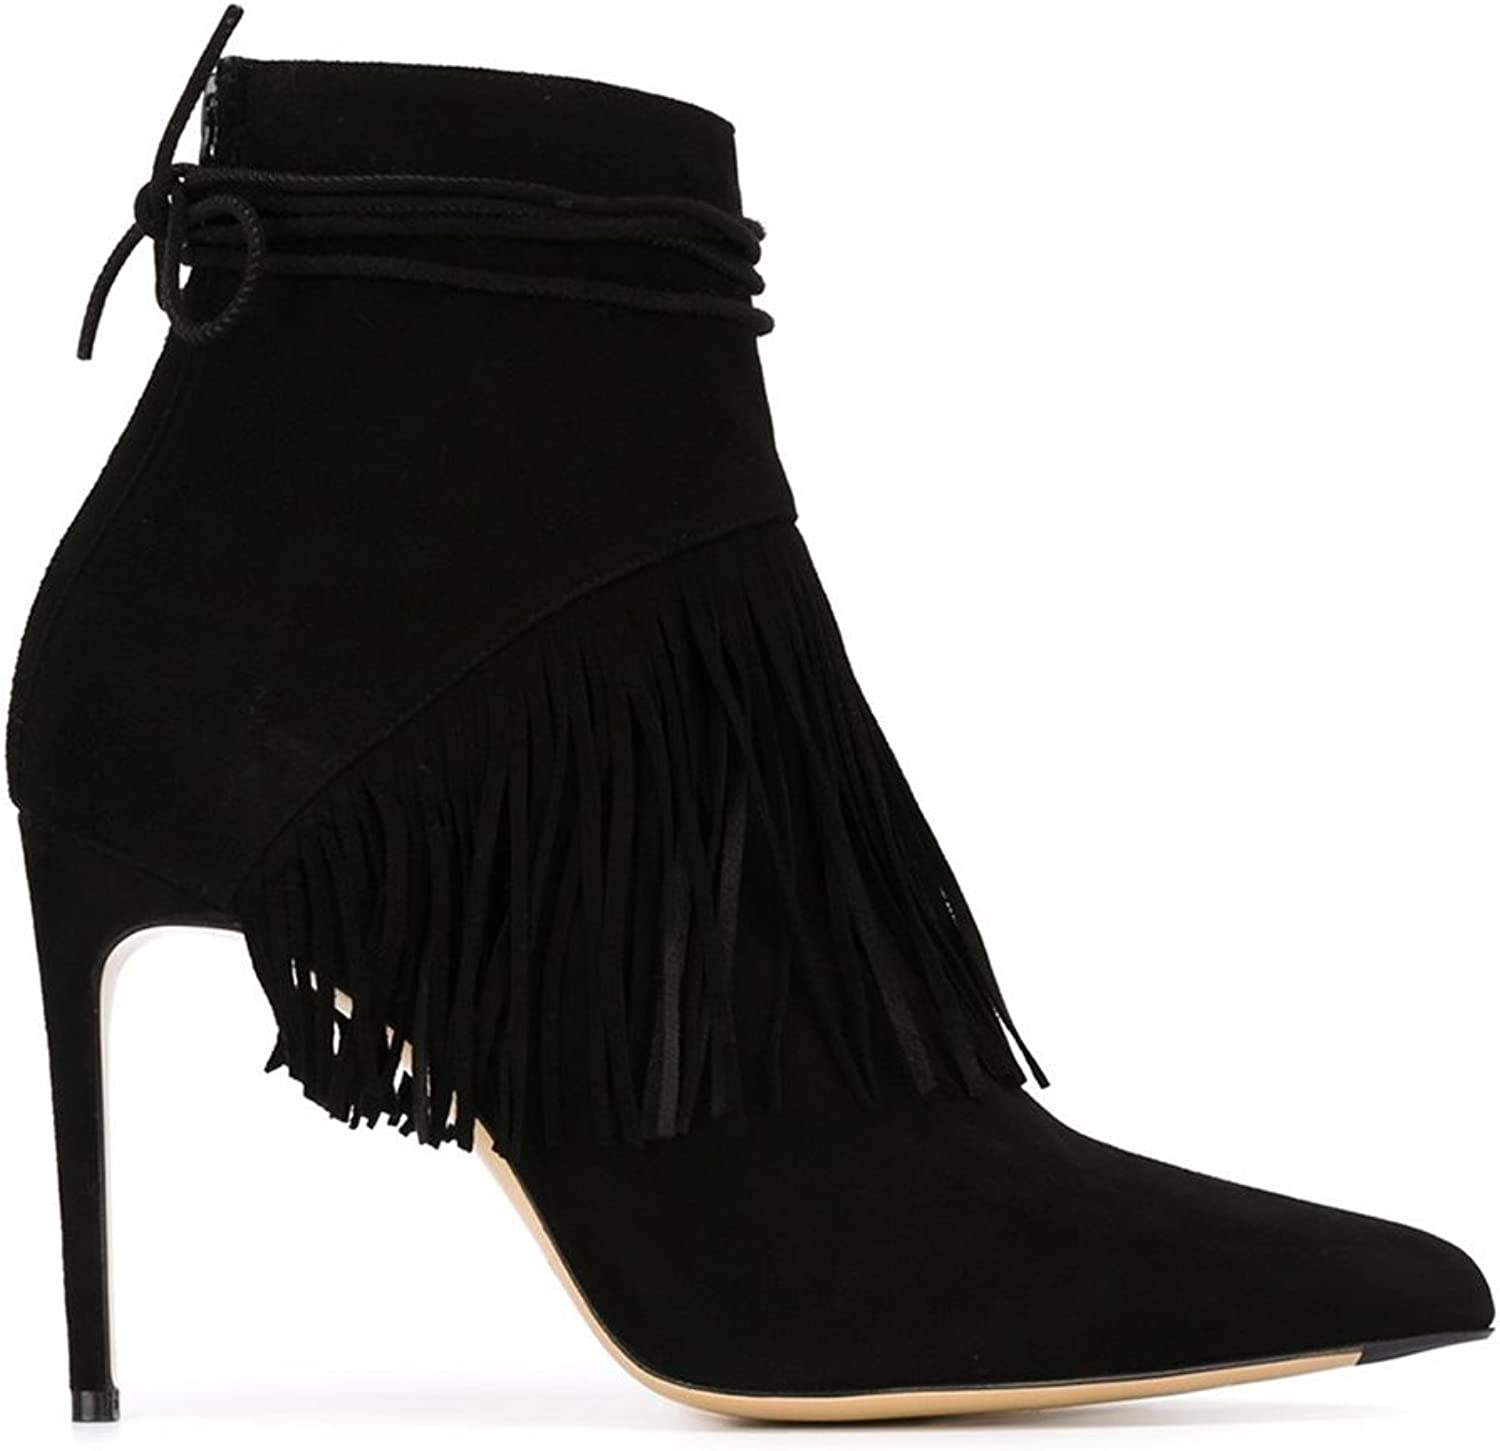 Joogo Pointed Toe Back Zipper Fringe Lace Up High Slim Stiletto Ankle Boots Black Camel Suede